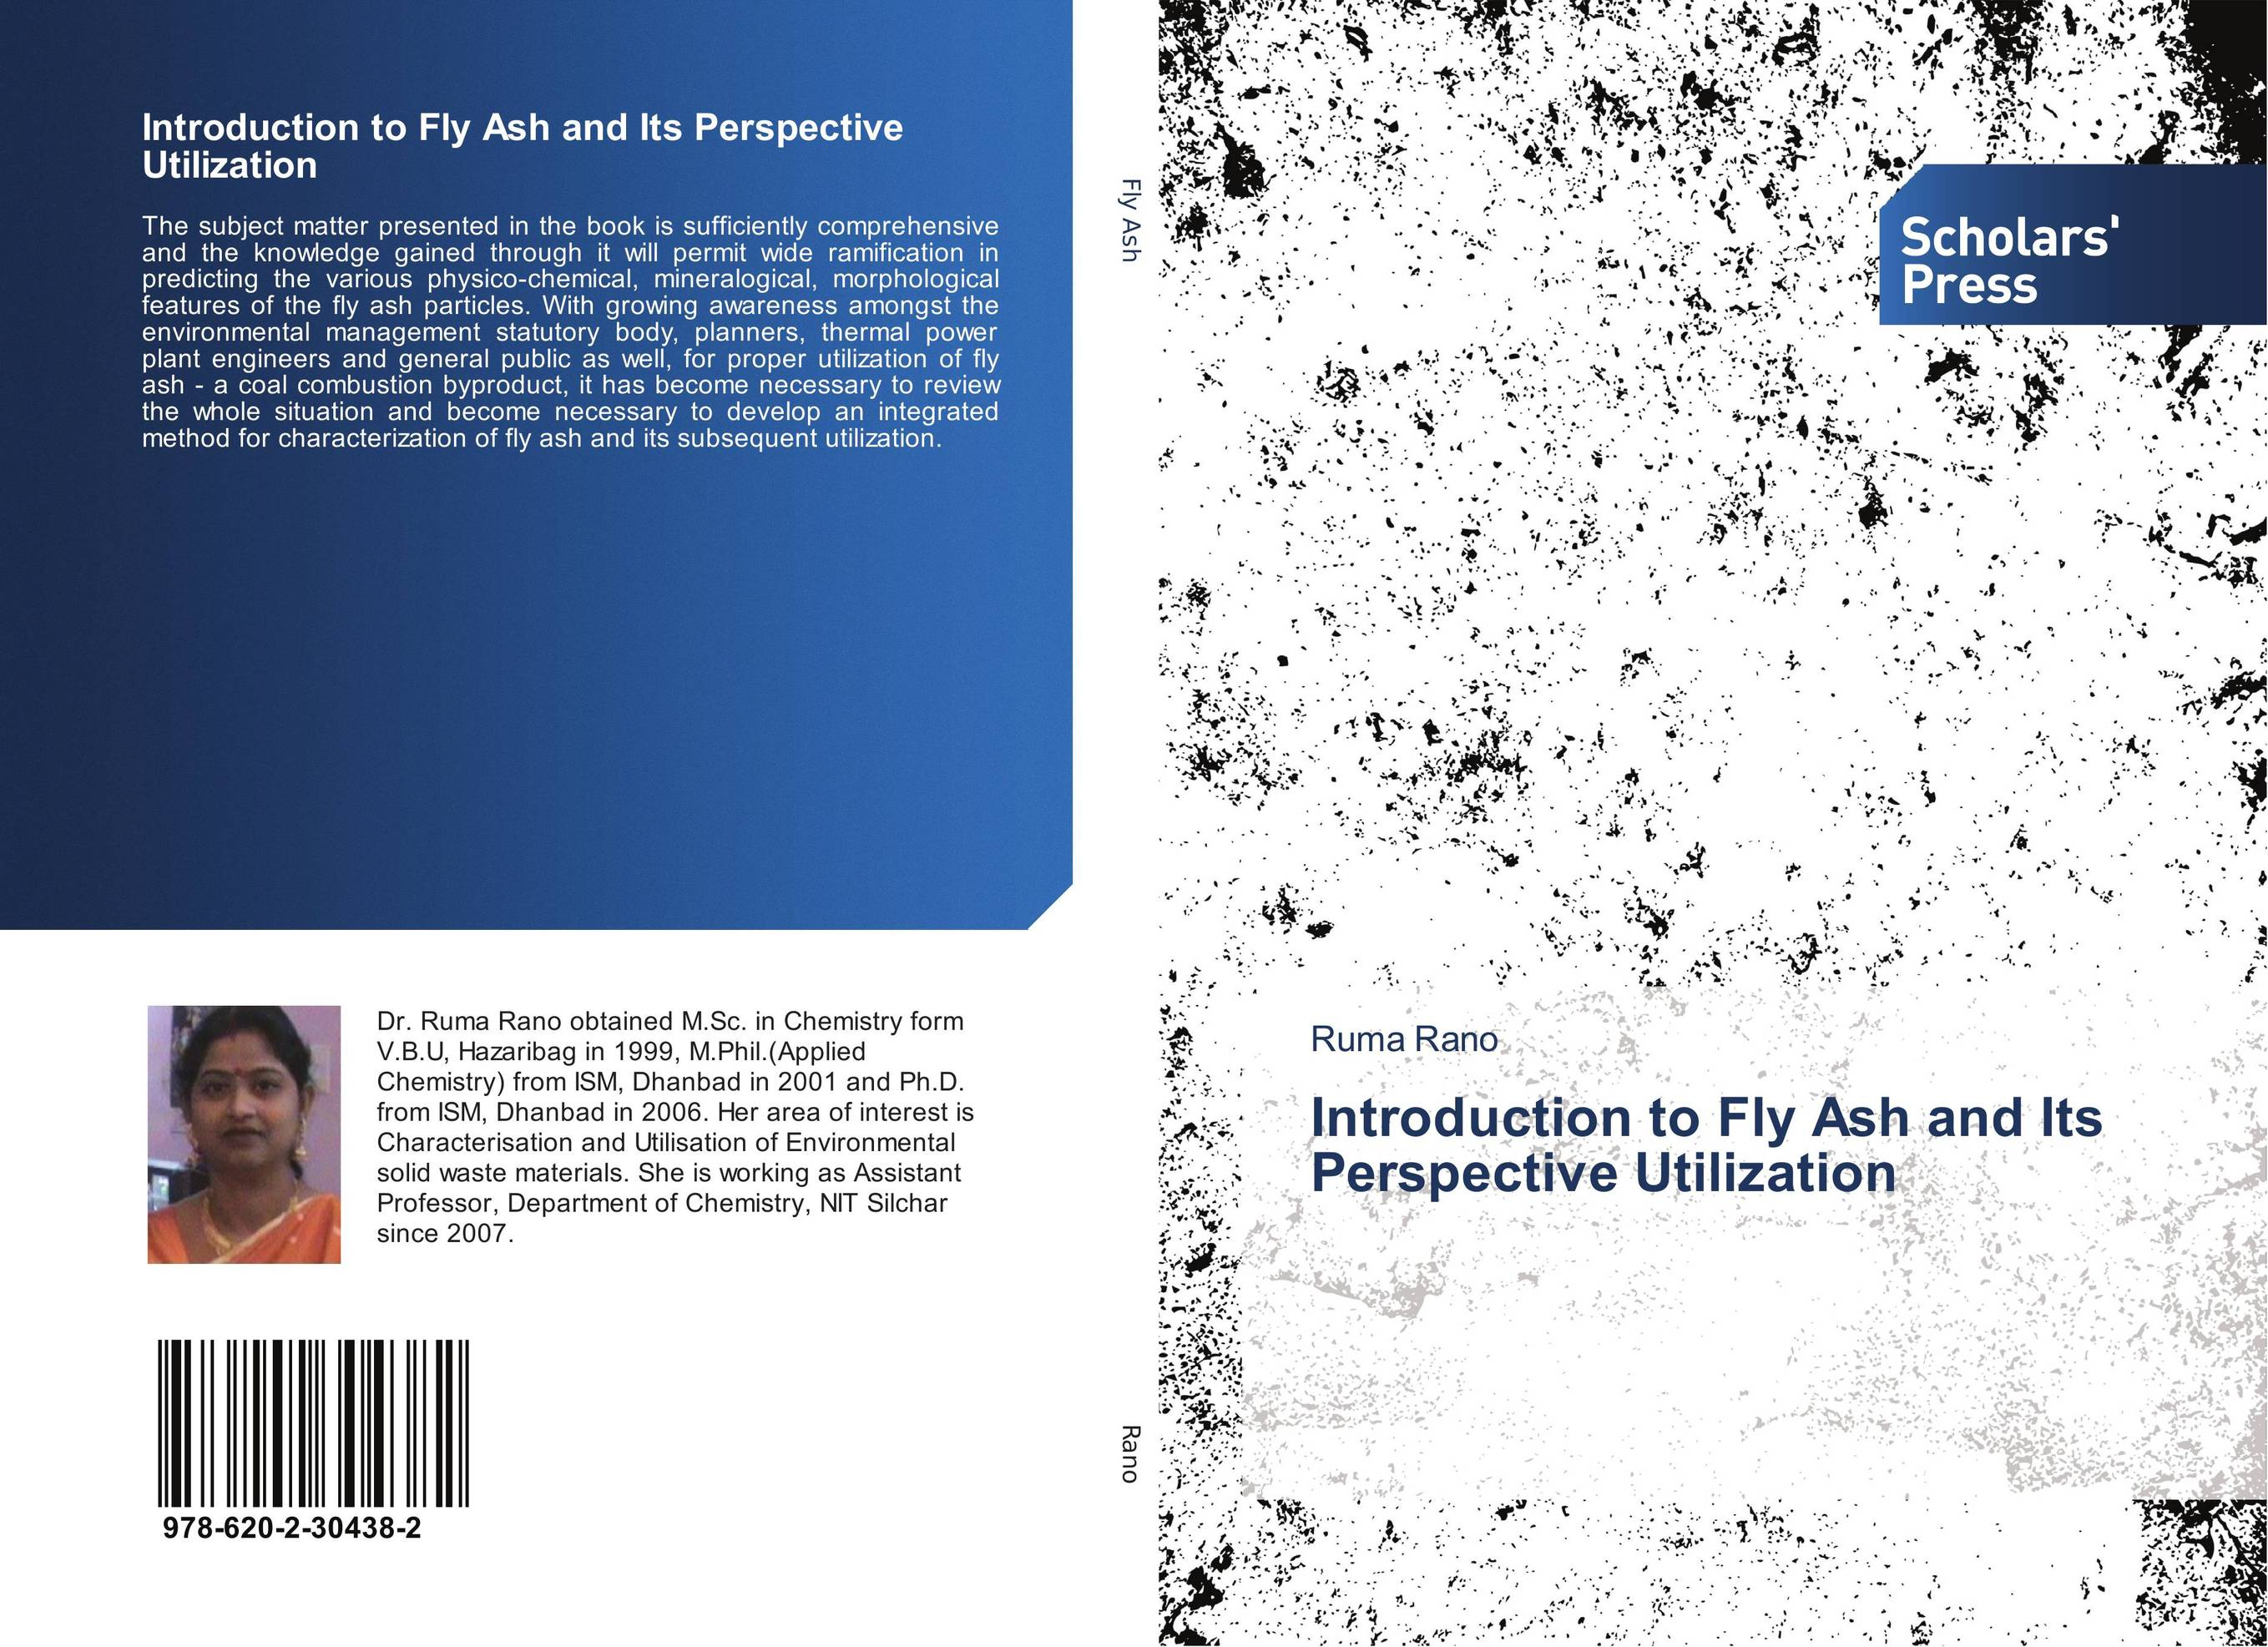 fly ash utilization in china Fly ash management and use in the united states is regulated by both state and federal agencies the 105 billion tons of coal burned each year in the united states contain 109 tons of mercury, 7884 tons of arsenic, 1167 tons of beryllium, 750 tons of cadmium, 8810 tons of chromium, 9339 tons of nickel, and 2587 tons of selenium.